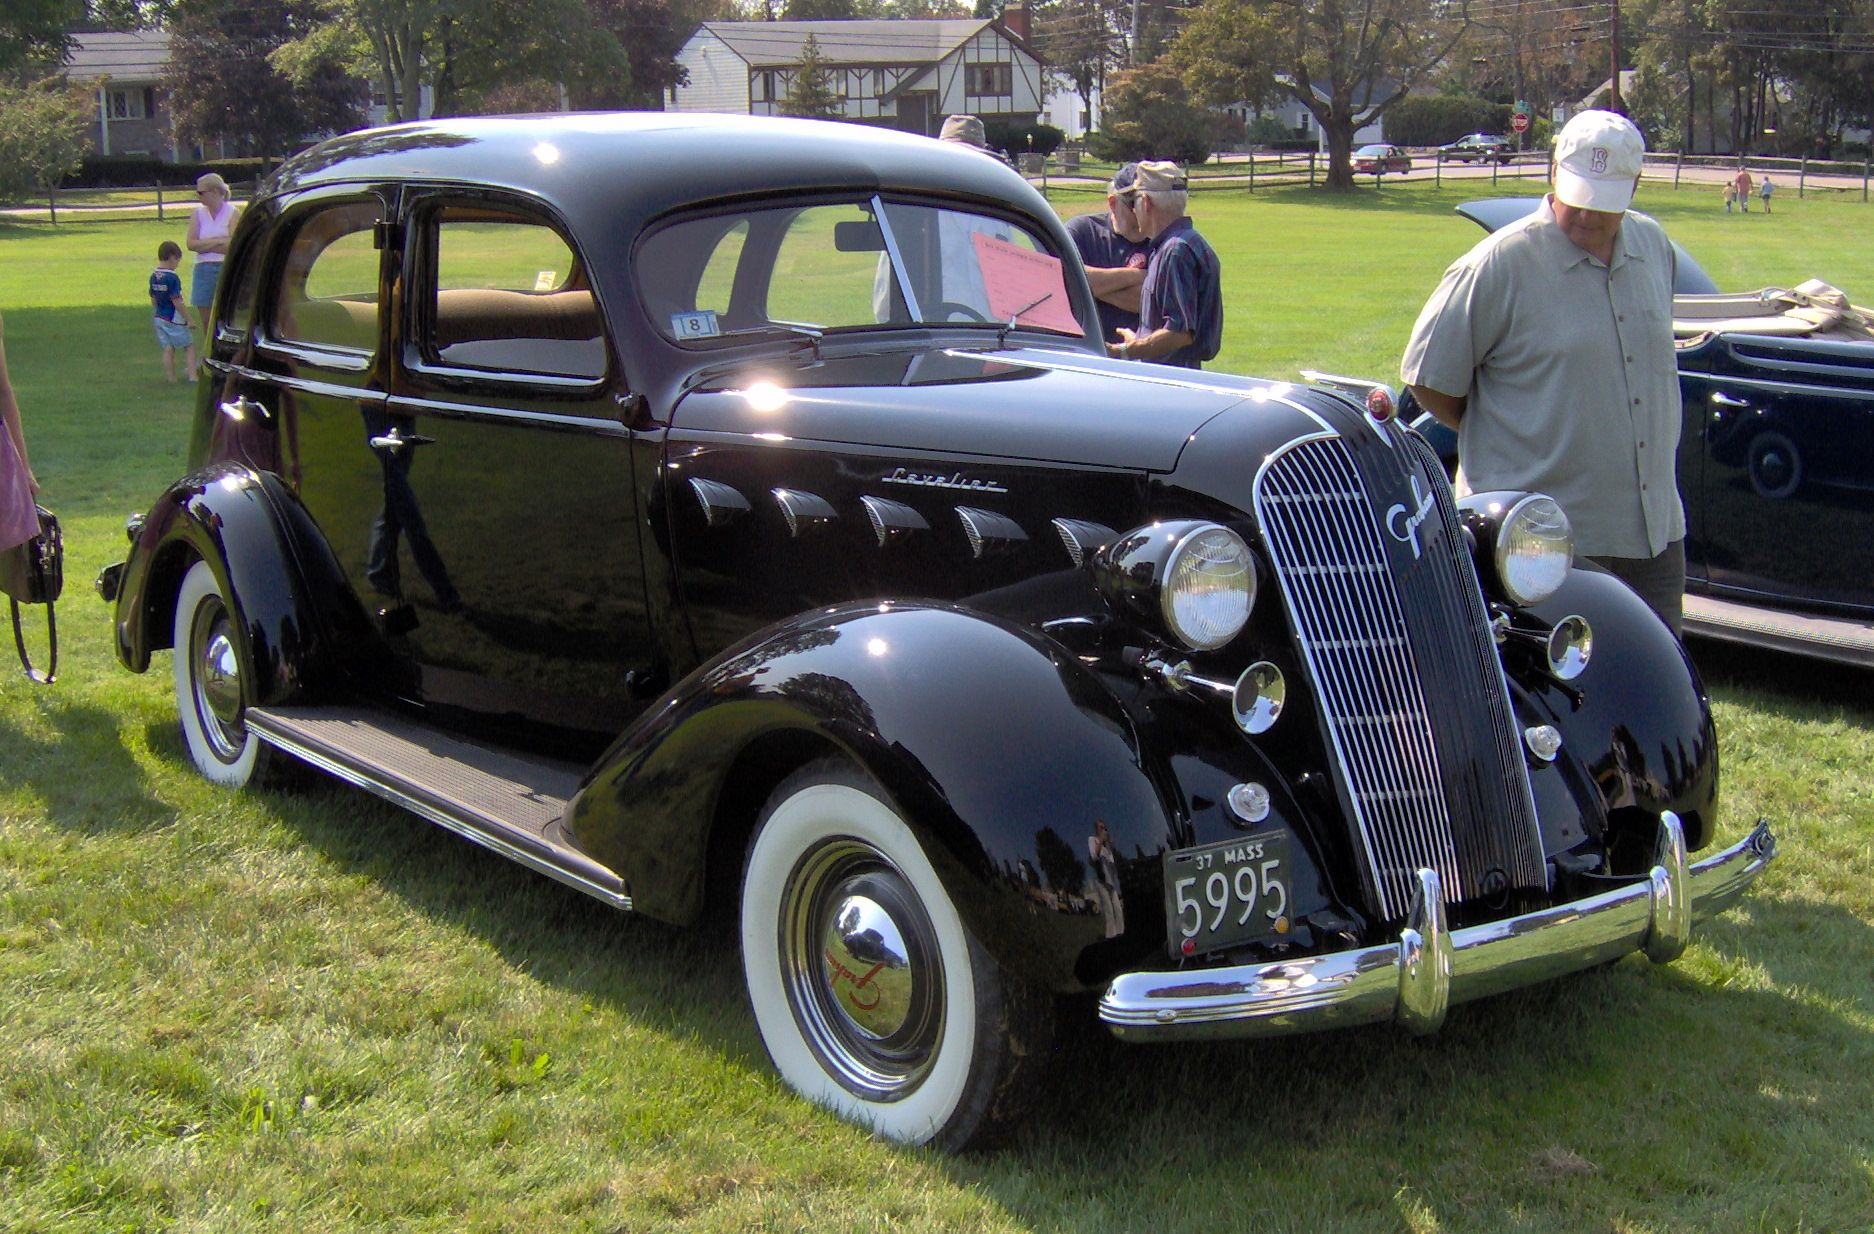 1937 Graham Cavalier Paige Wikipedia The Free Electric Window Lifts Wiring Diagram For 1955 Studebaker Passenger Cars All Models Except 4 Door Sedans Encyclopedia And Trucks